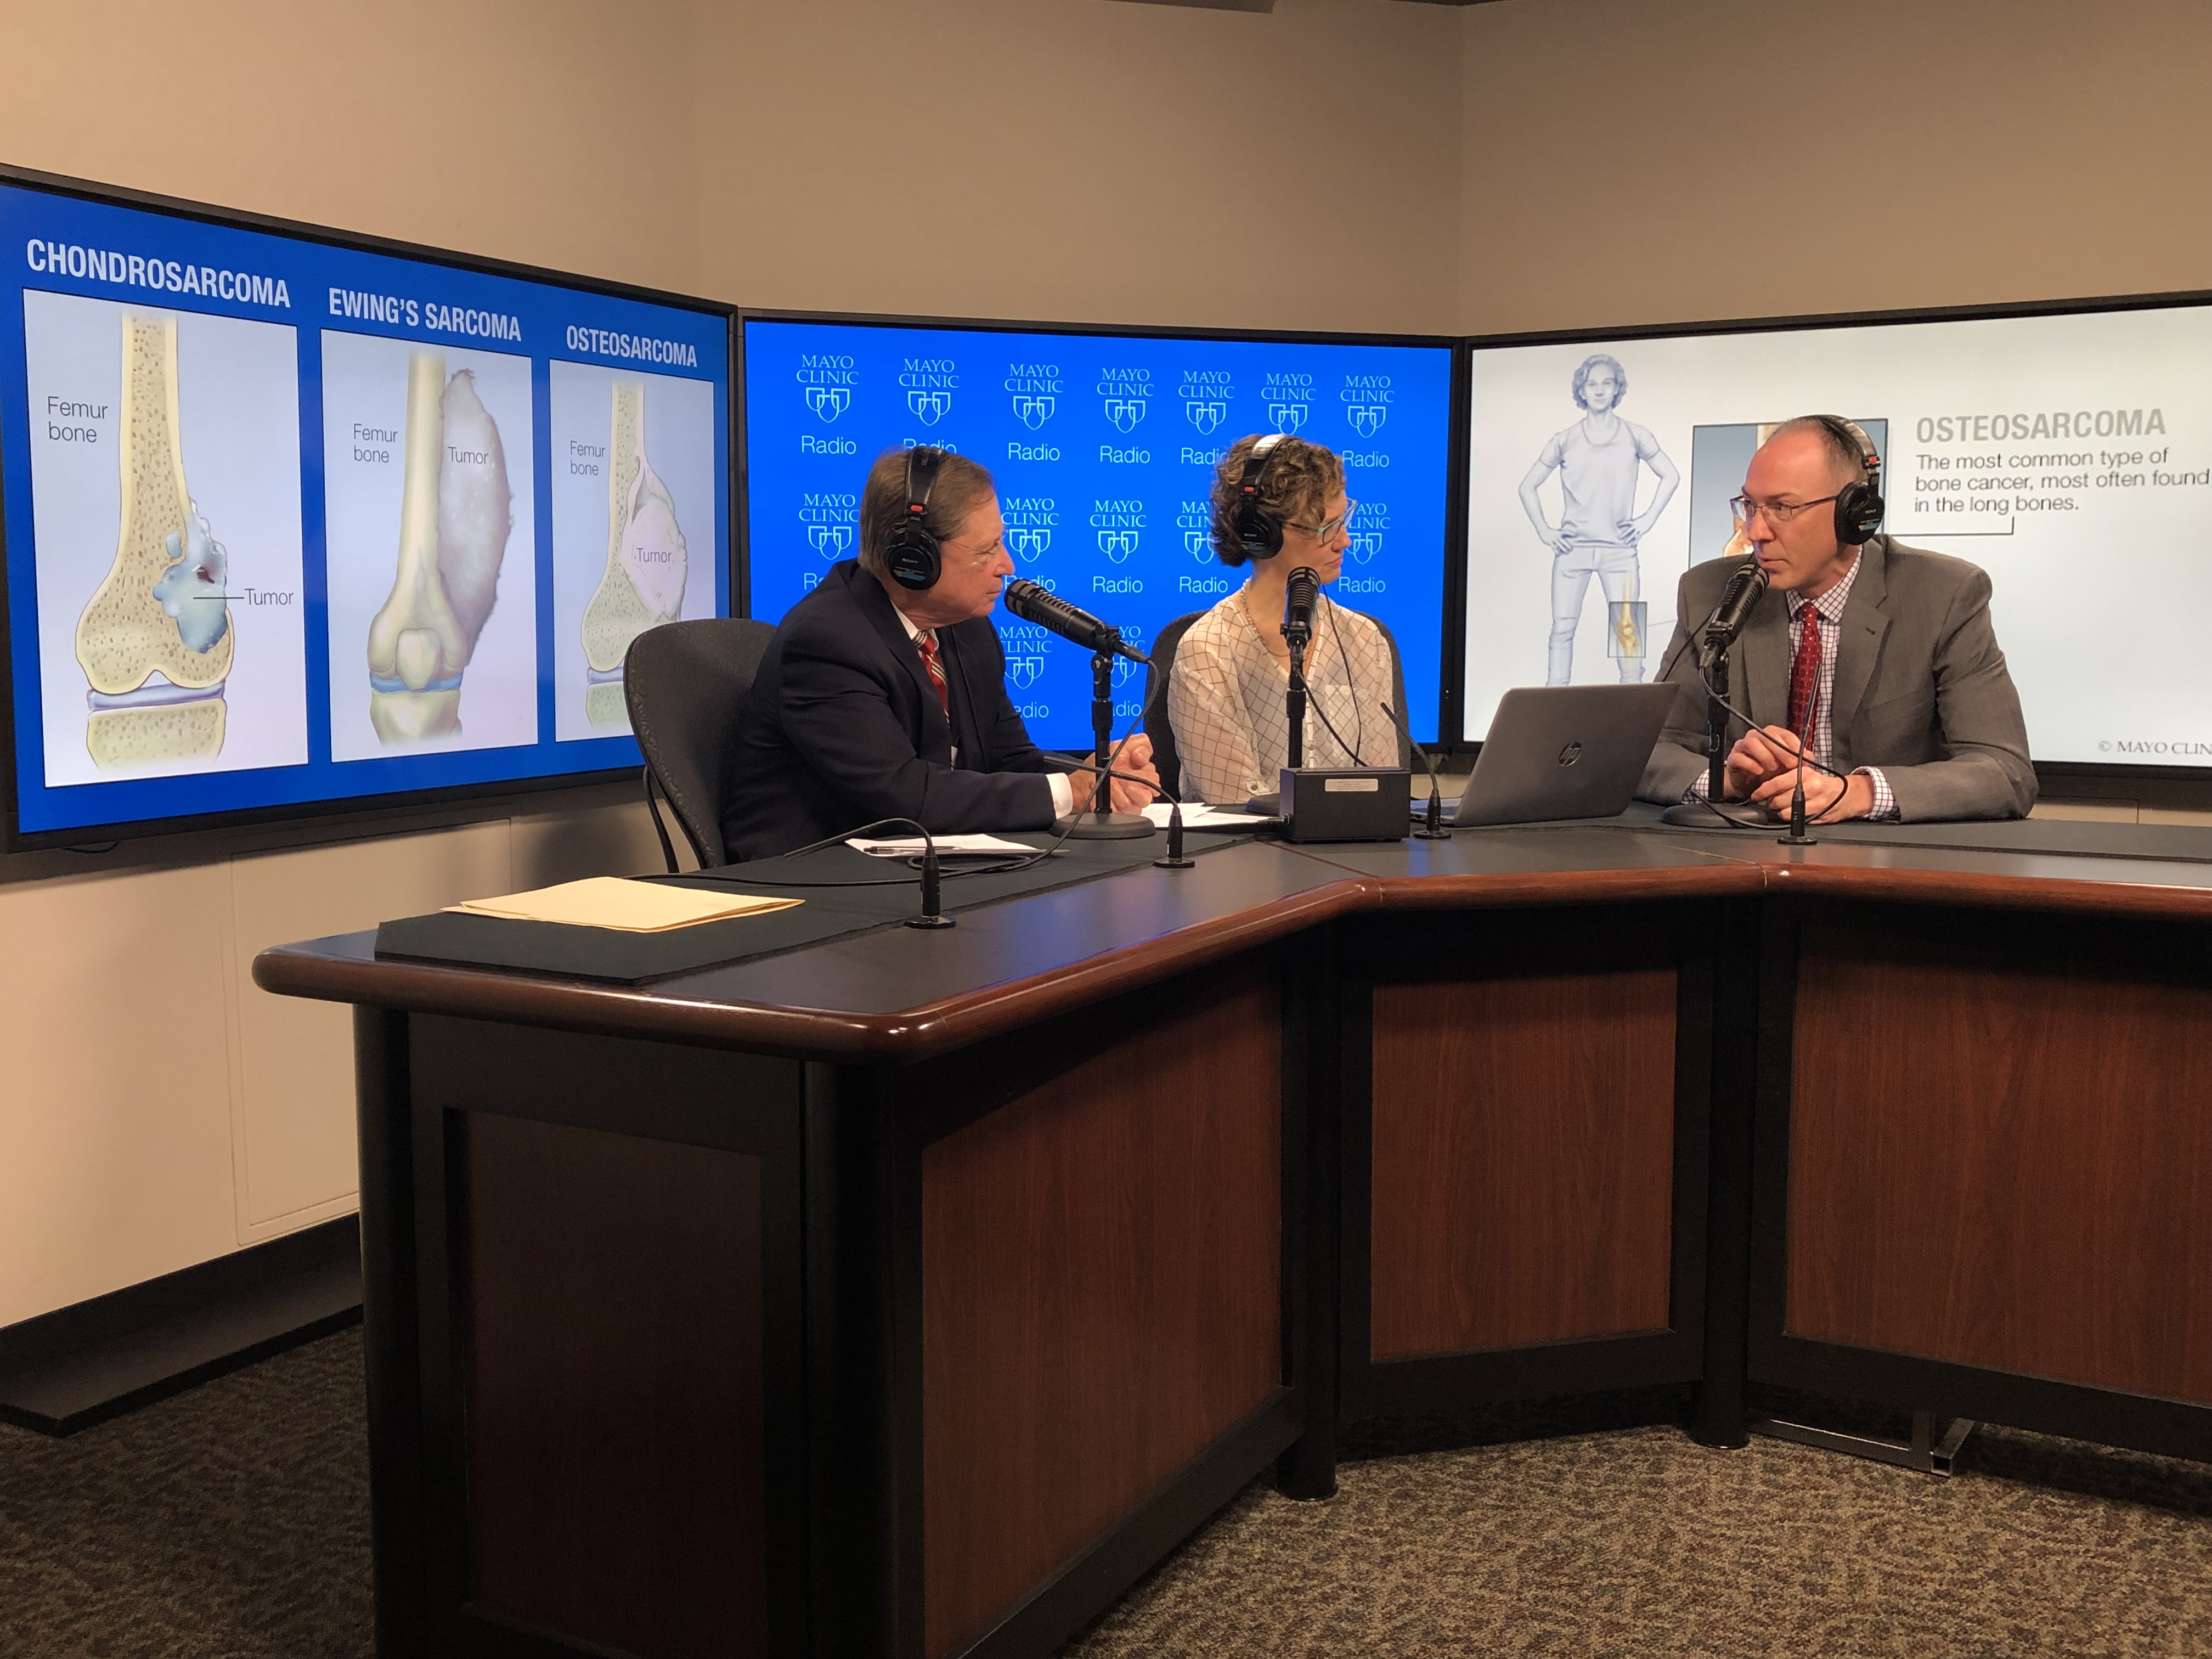 Dr. Peter Rose being interviewed on Mayo Clinic Radio